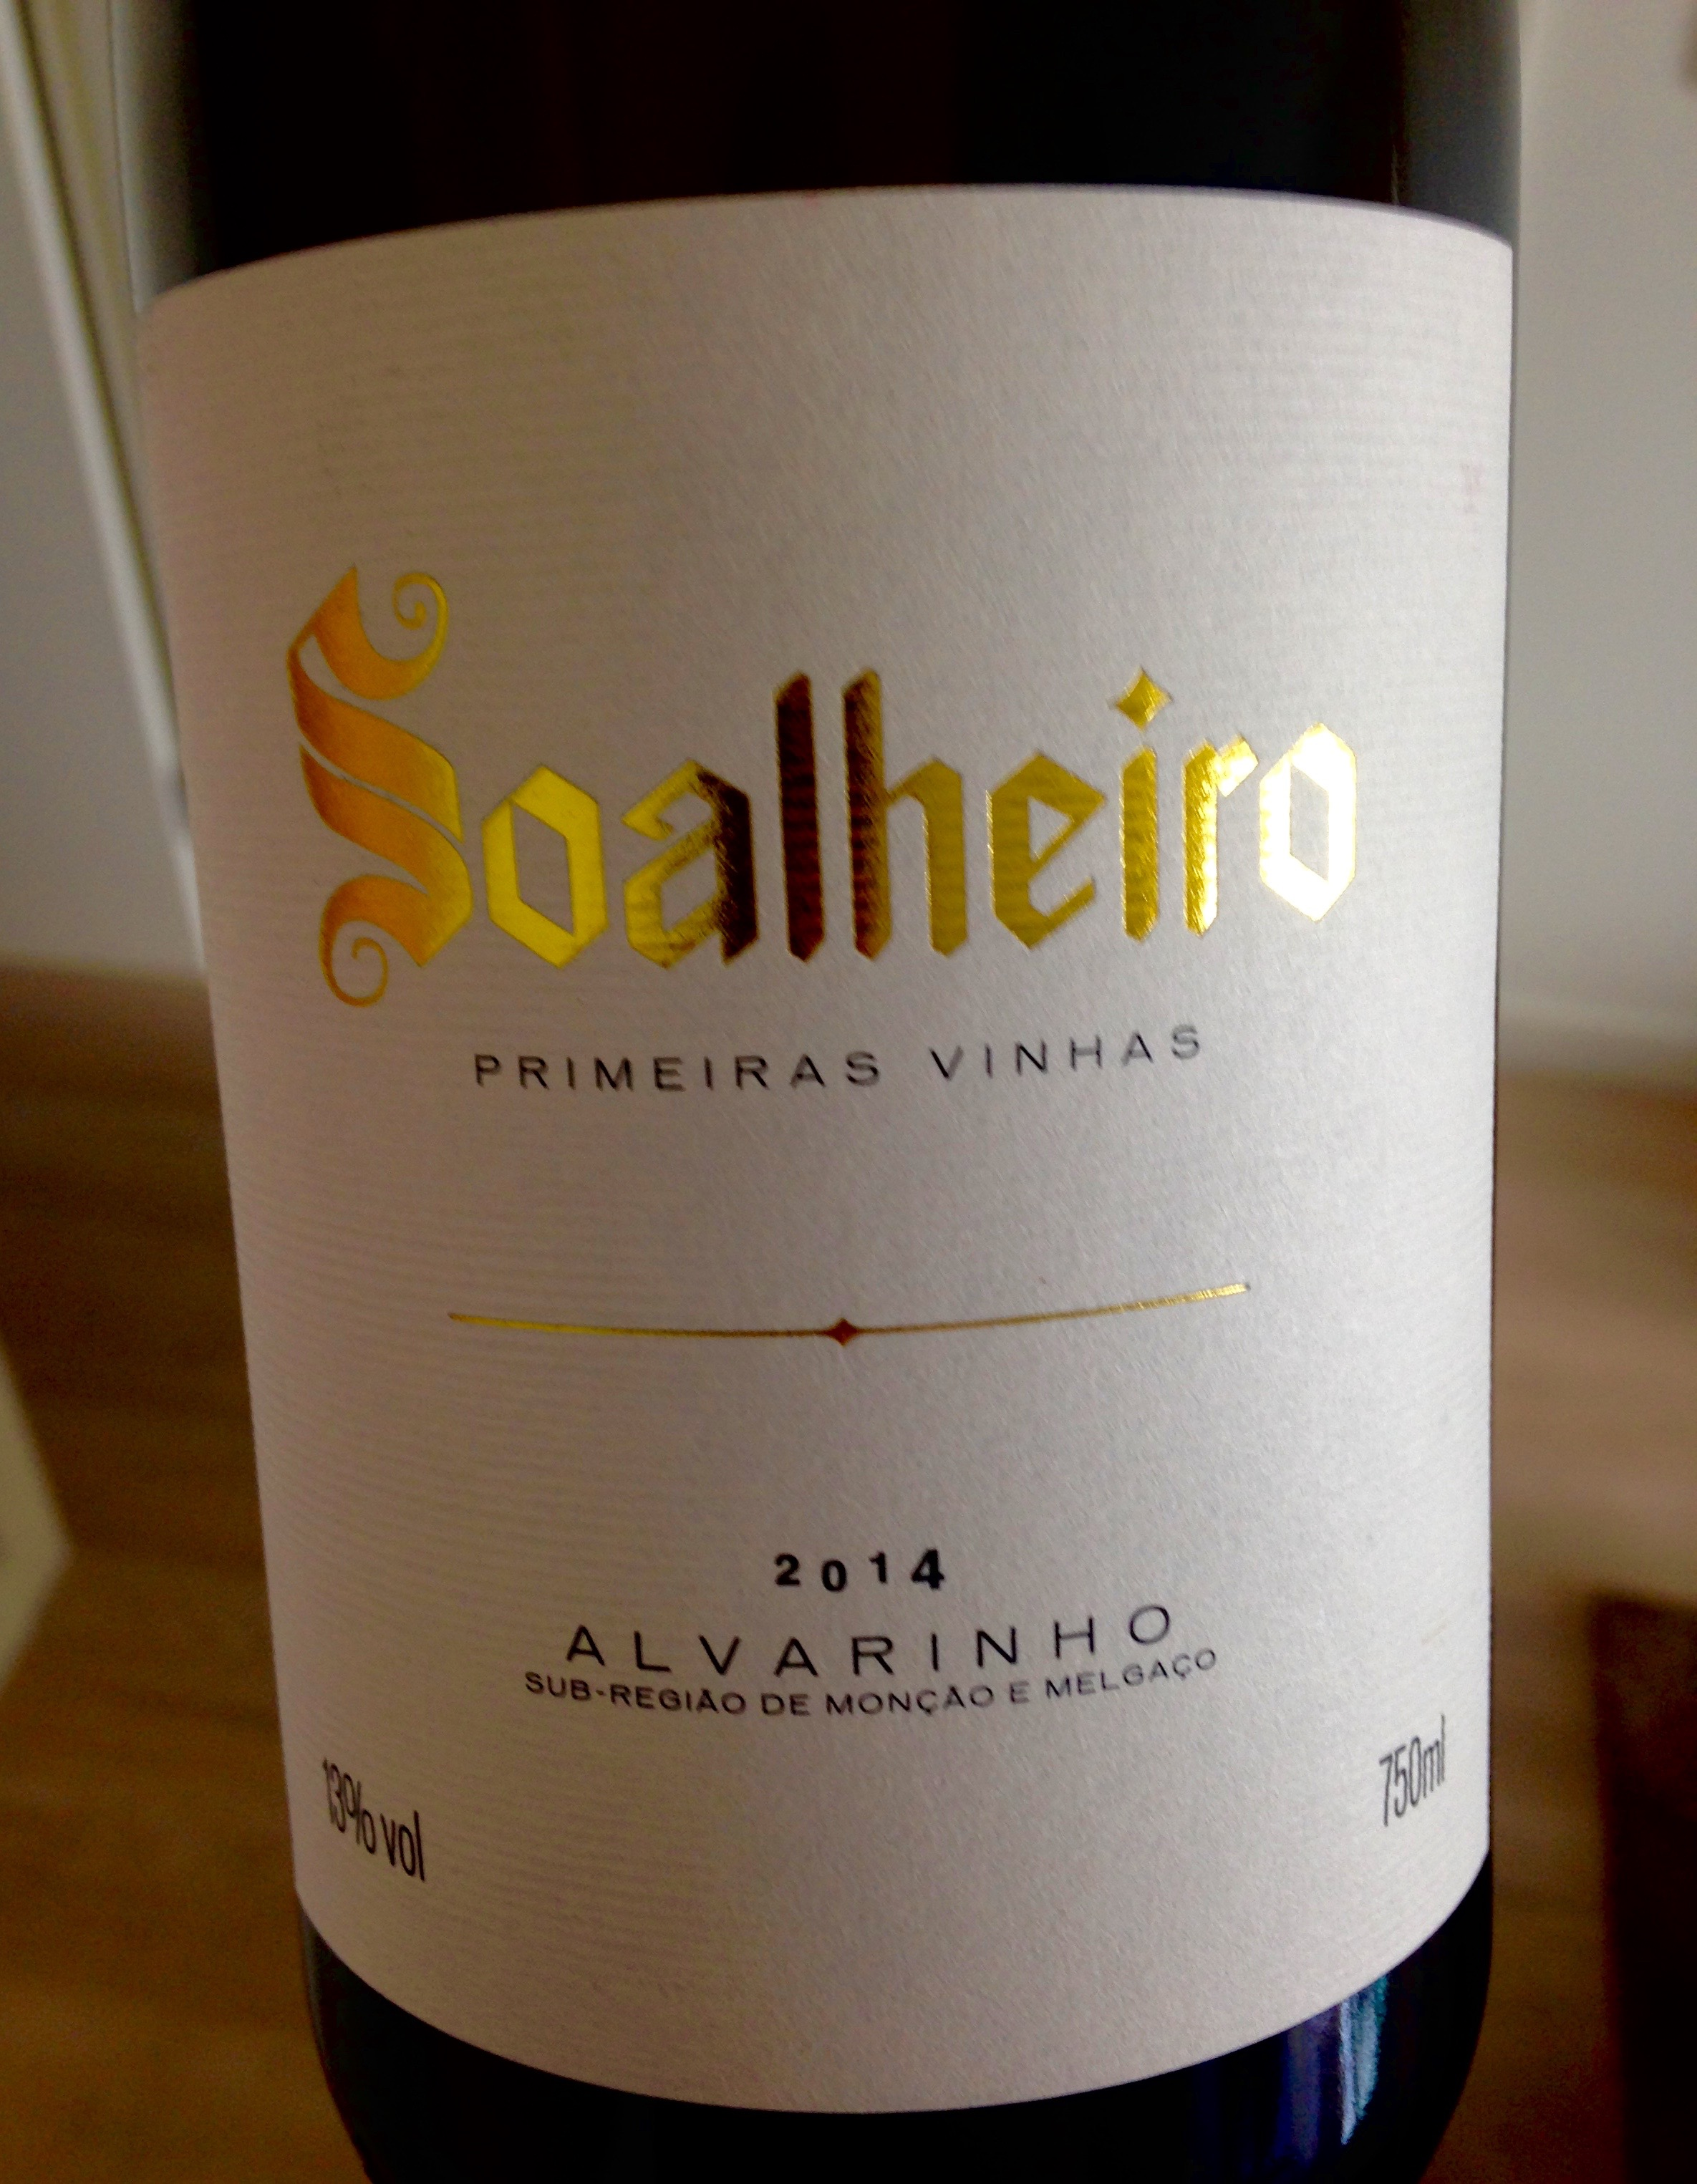 Primerias Vinhas (first vines)